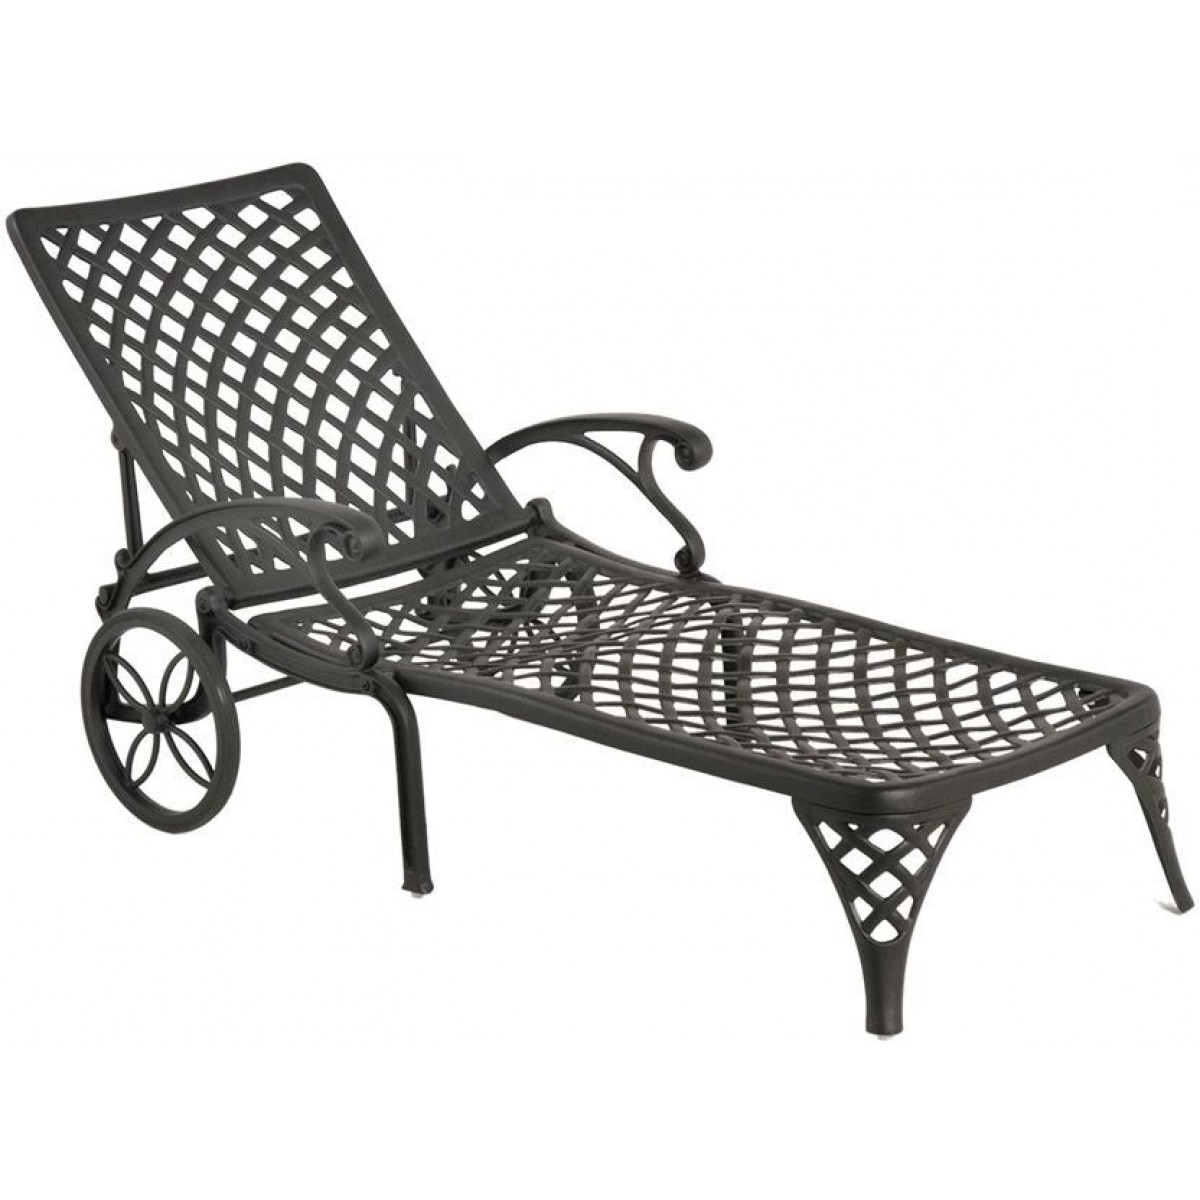 Cast Aluminum Chaise Lounges With Current Hanamint Newport Chaise Lounge (View 5 of 15)